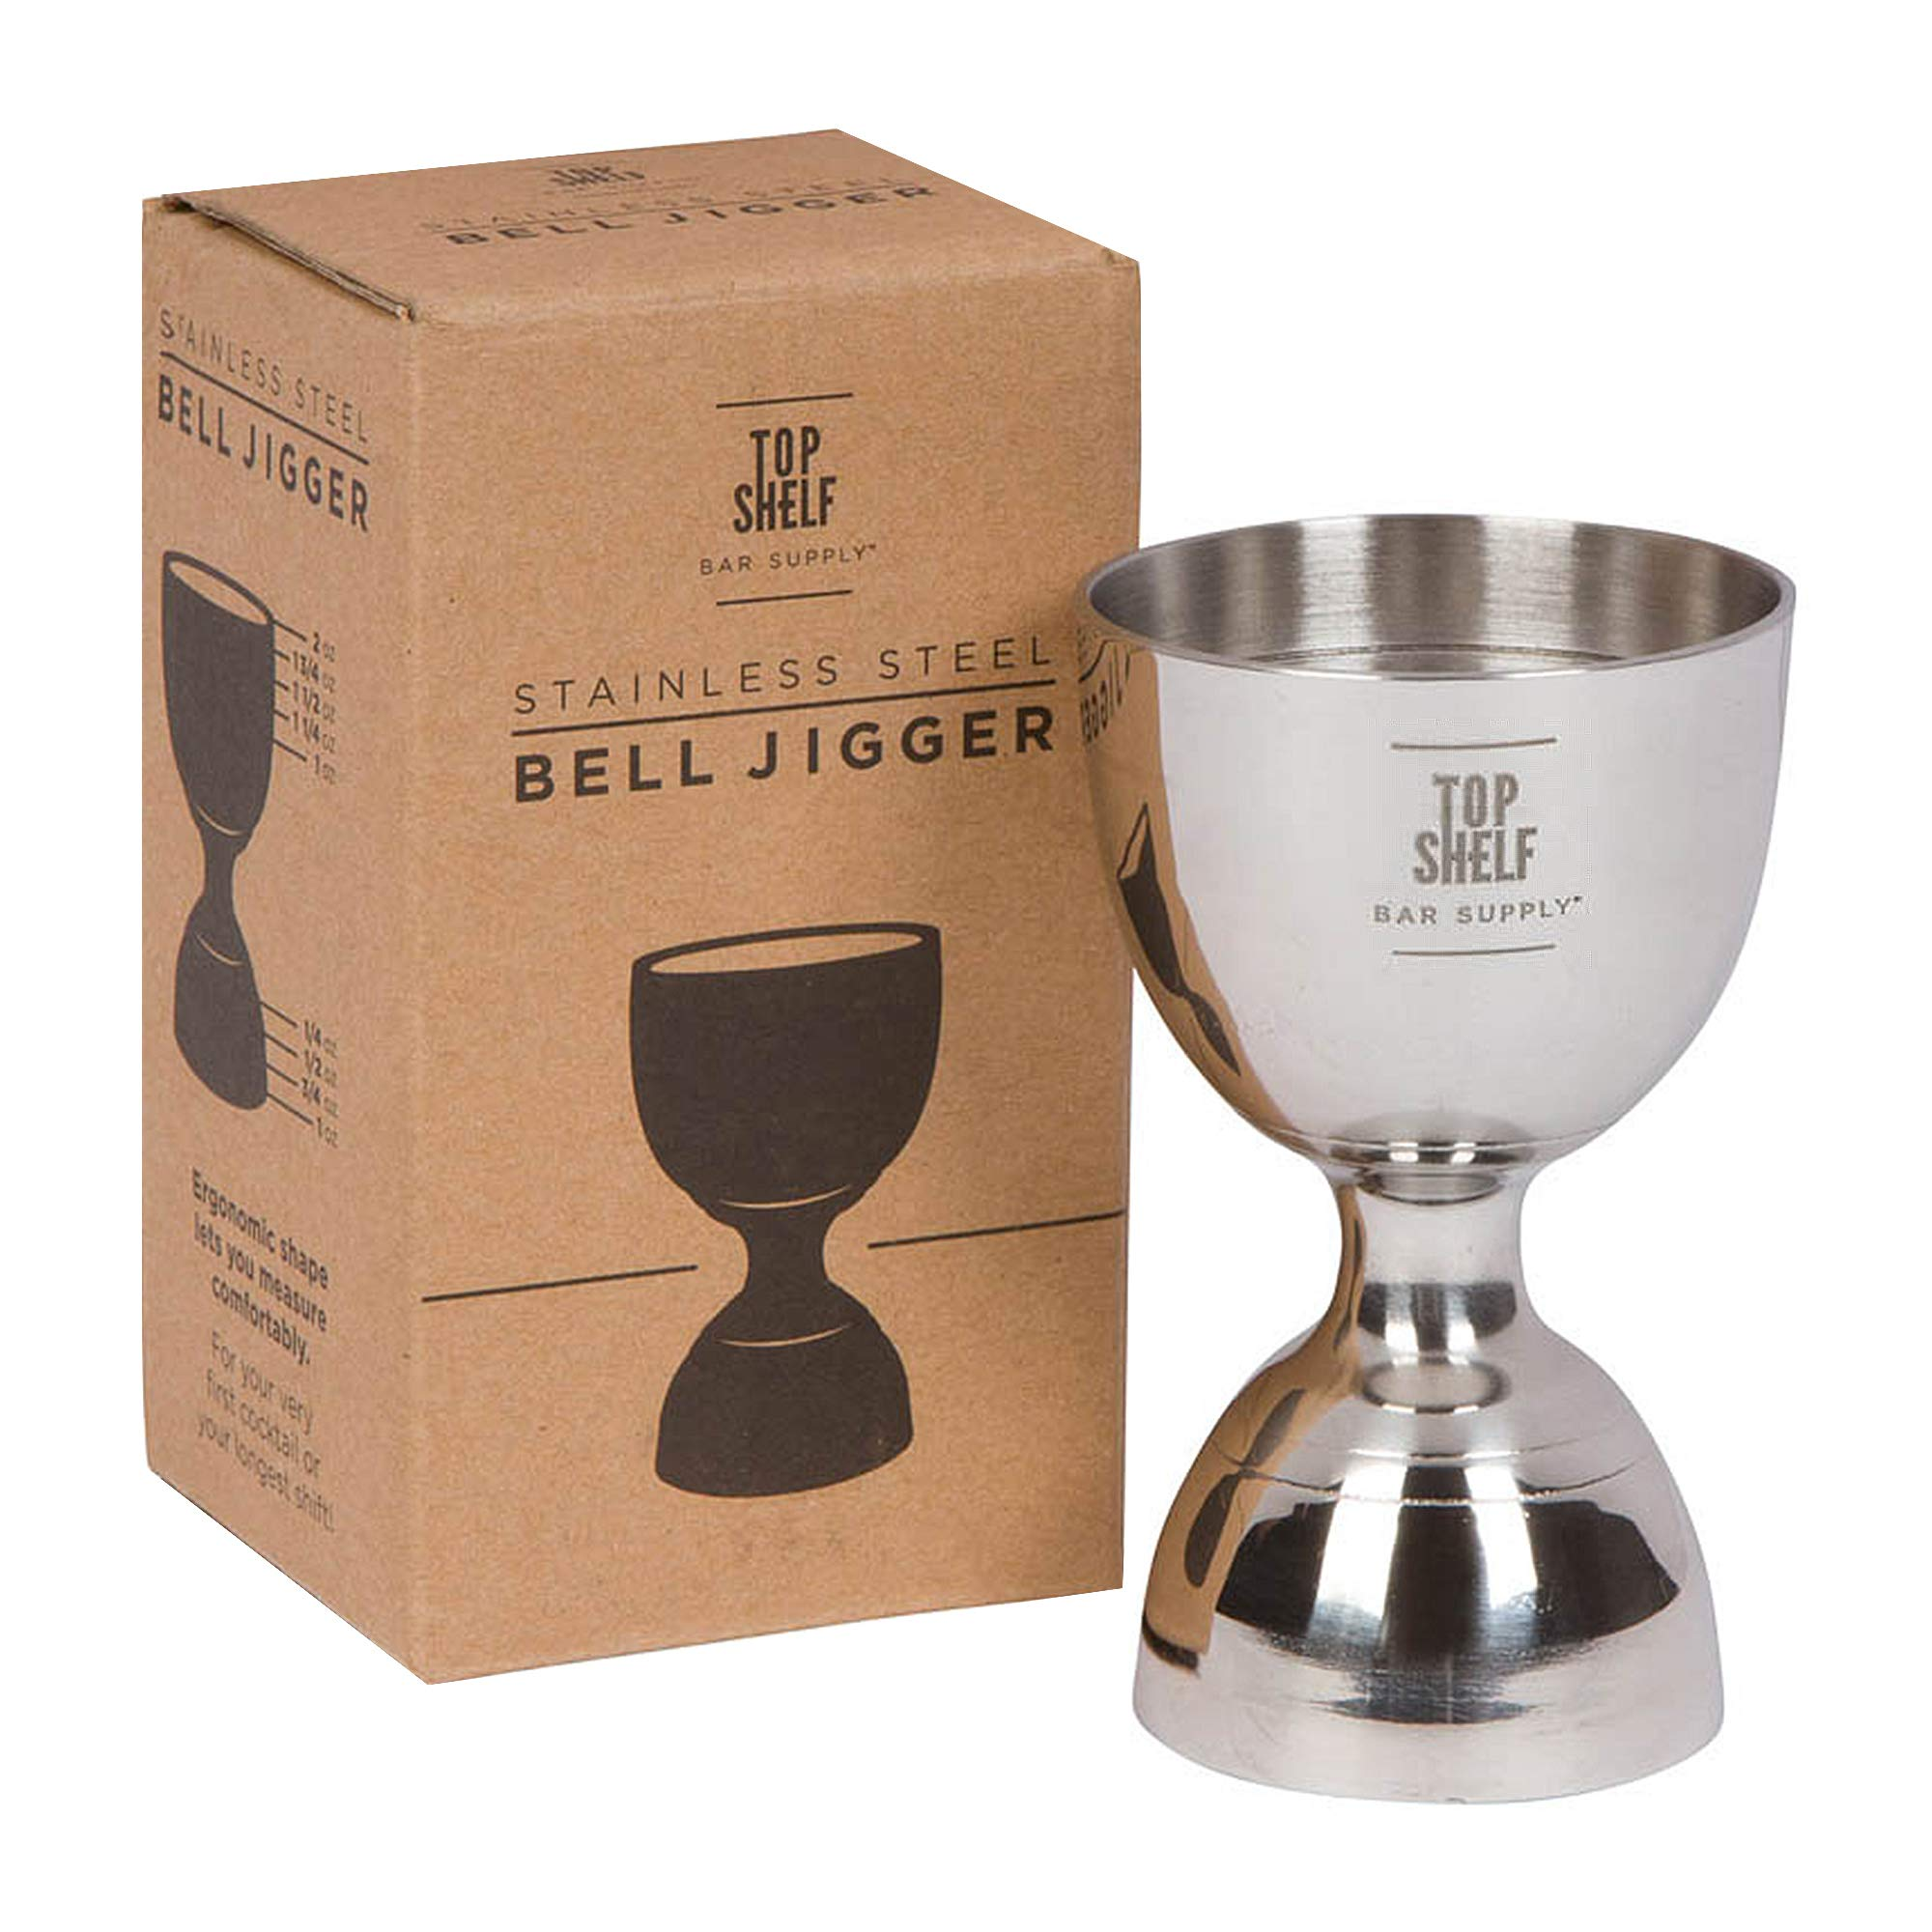 Top Shelf Bar Supply Bell Jigger - Premium Double Cocktail Jigger, 1oz/2oz made from Stainless Steel 304